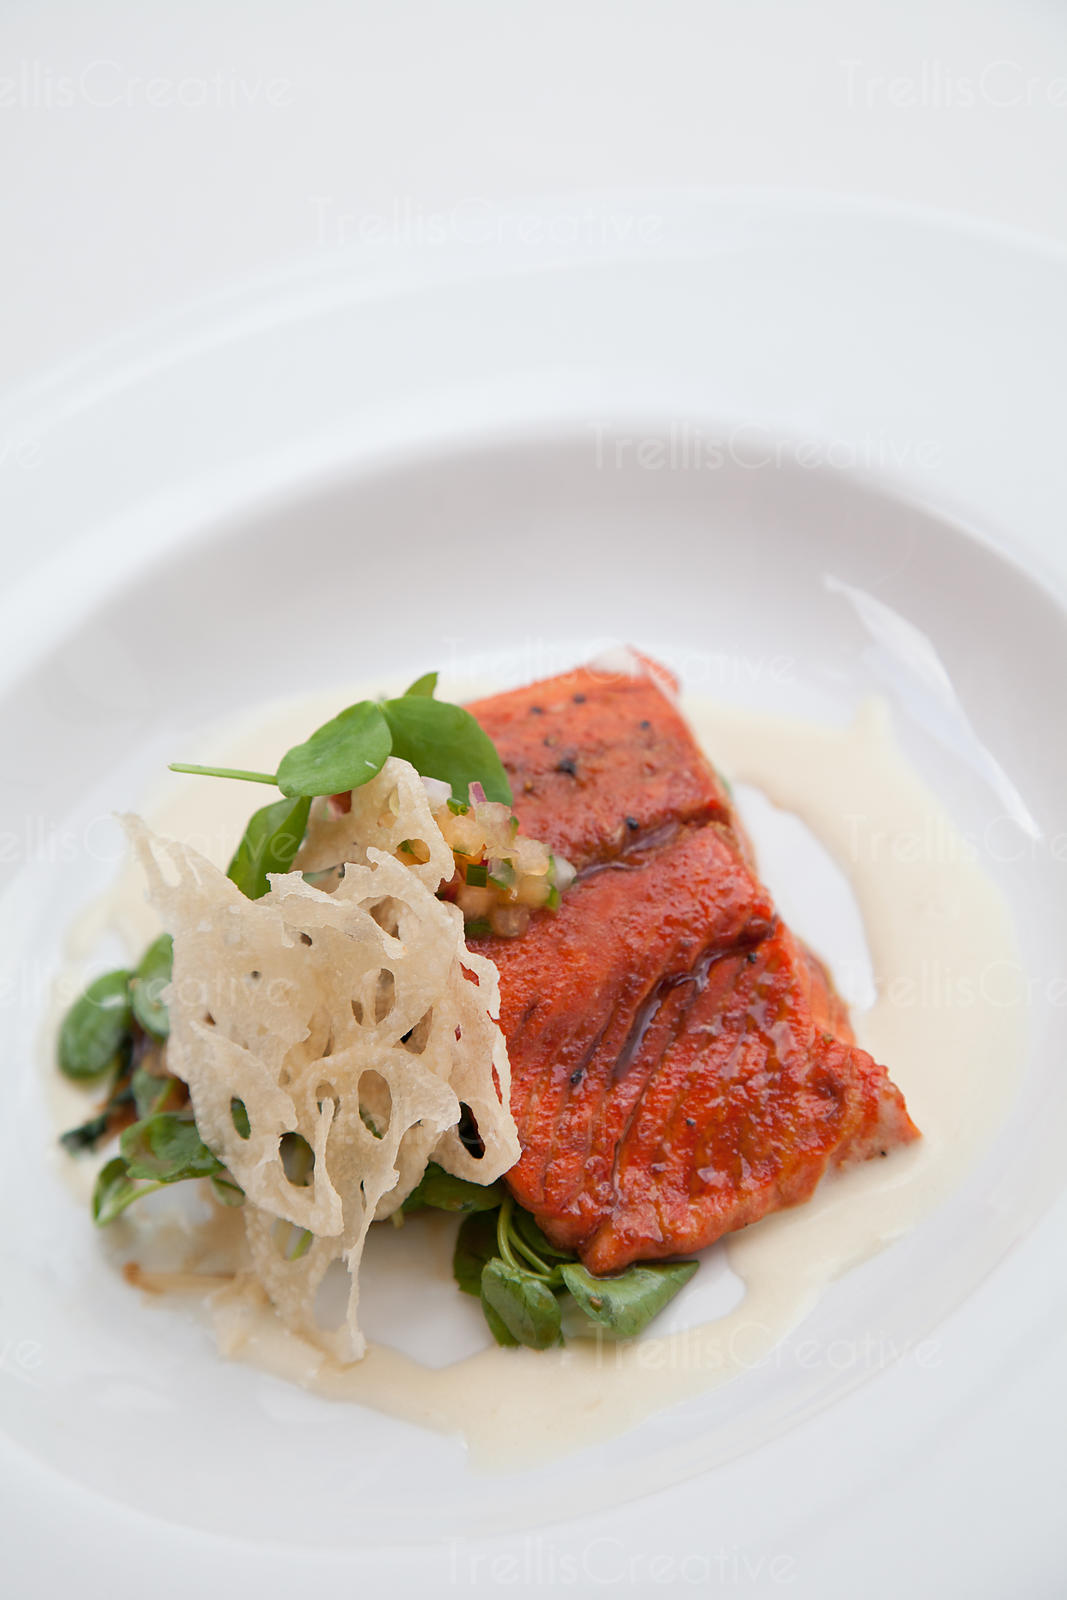 Close-up of a grilled salmon steak on a white plate with lotus root garnish